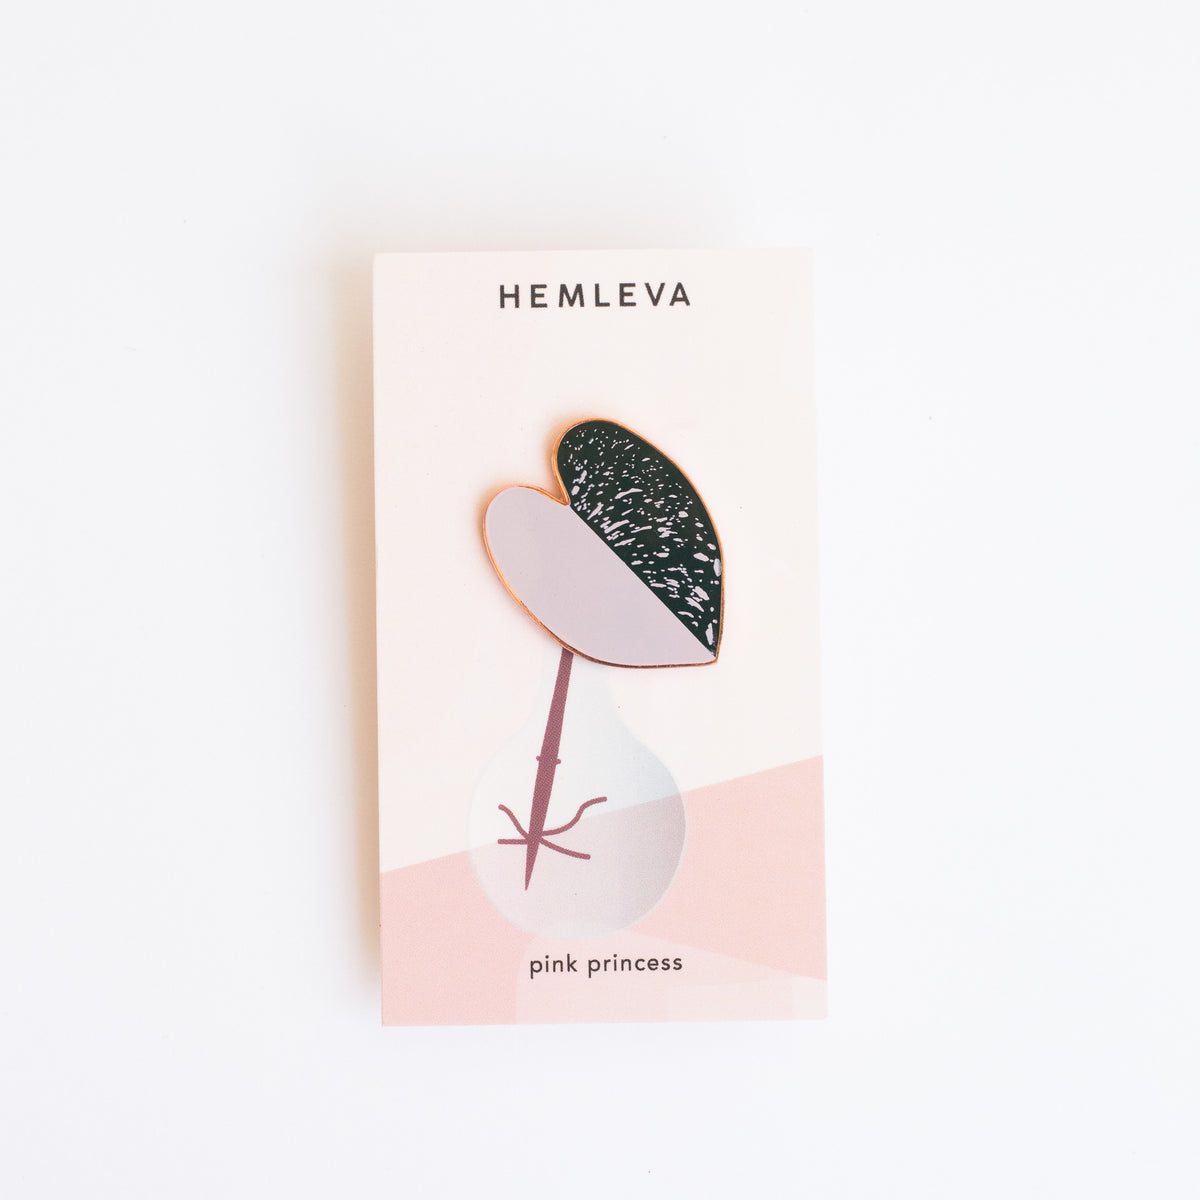 Hemleva Pink Princess • Lilac • Limited Edition Pin